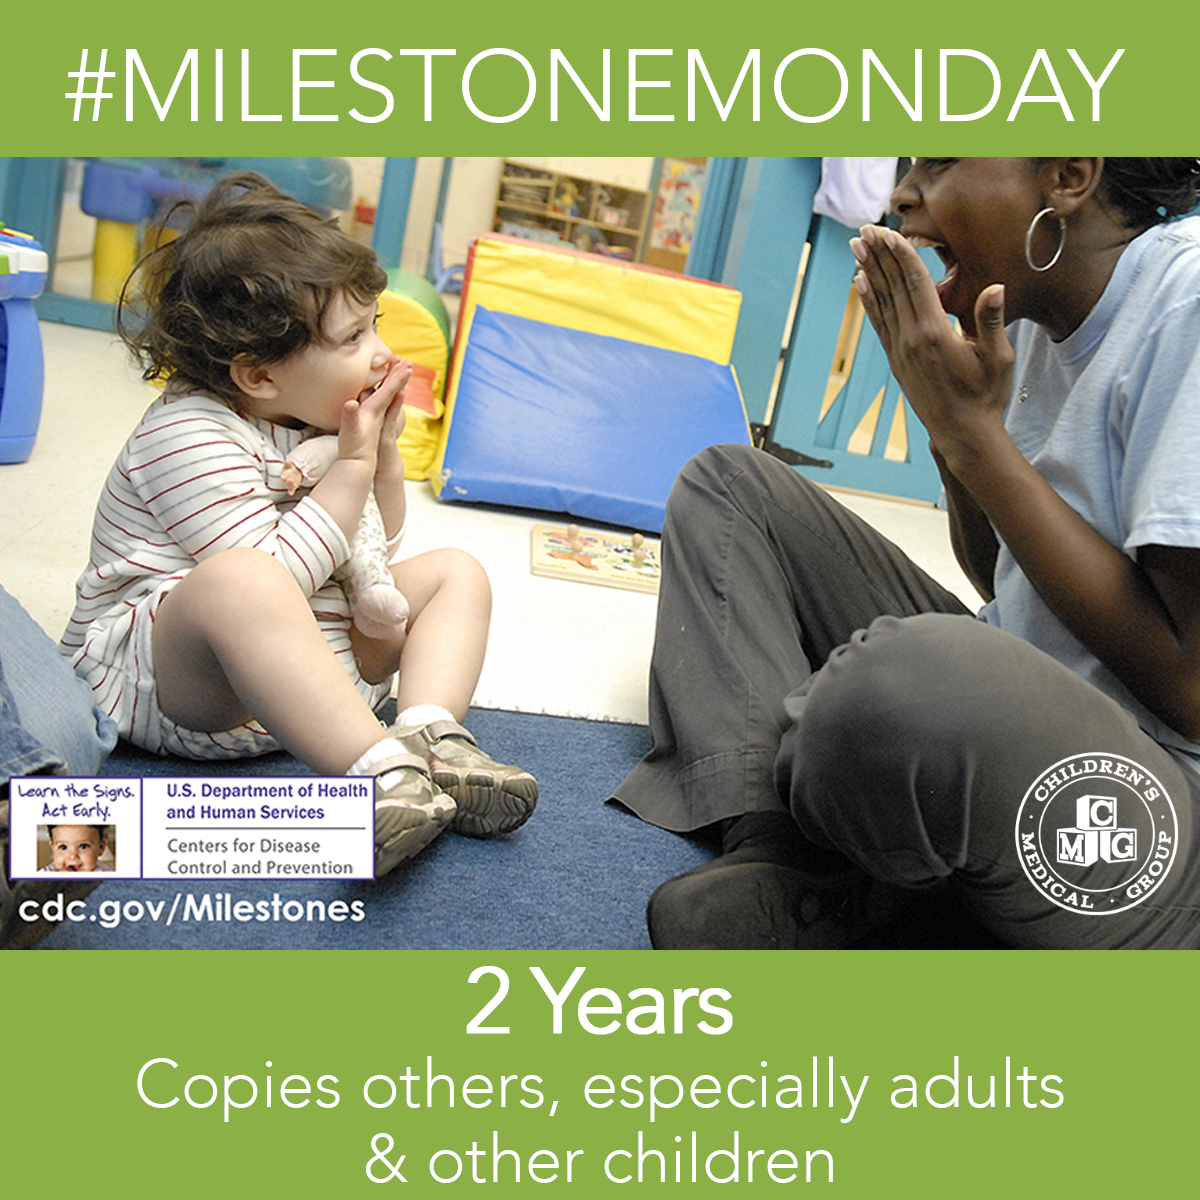 #MilestoneMonday - At 2 years old, your child will be able to mimic/copy others - especially adults & other children.   #ChildrensMedicalGroup #MilestoneMonday #CMG  #DevelopmentalMilestones #Milestones #Childhood #Development #Pediatrics #2Years #JacksonMS #MadisonMS #ClintonMSpic.twitter.com/RkAOfgo6p5